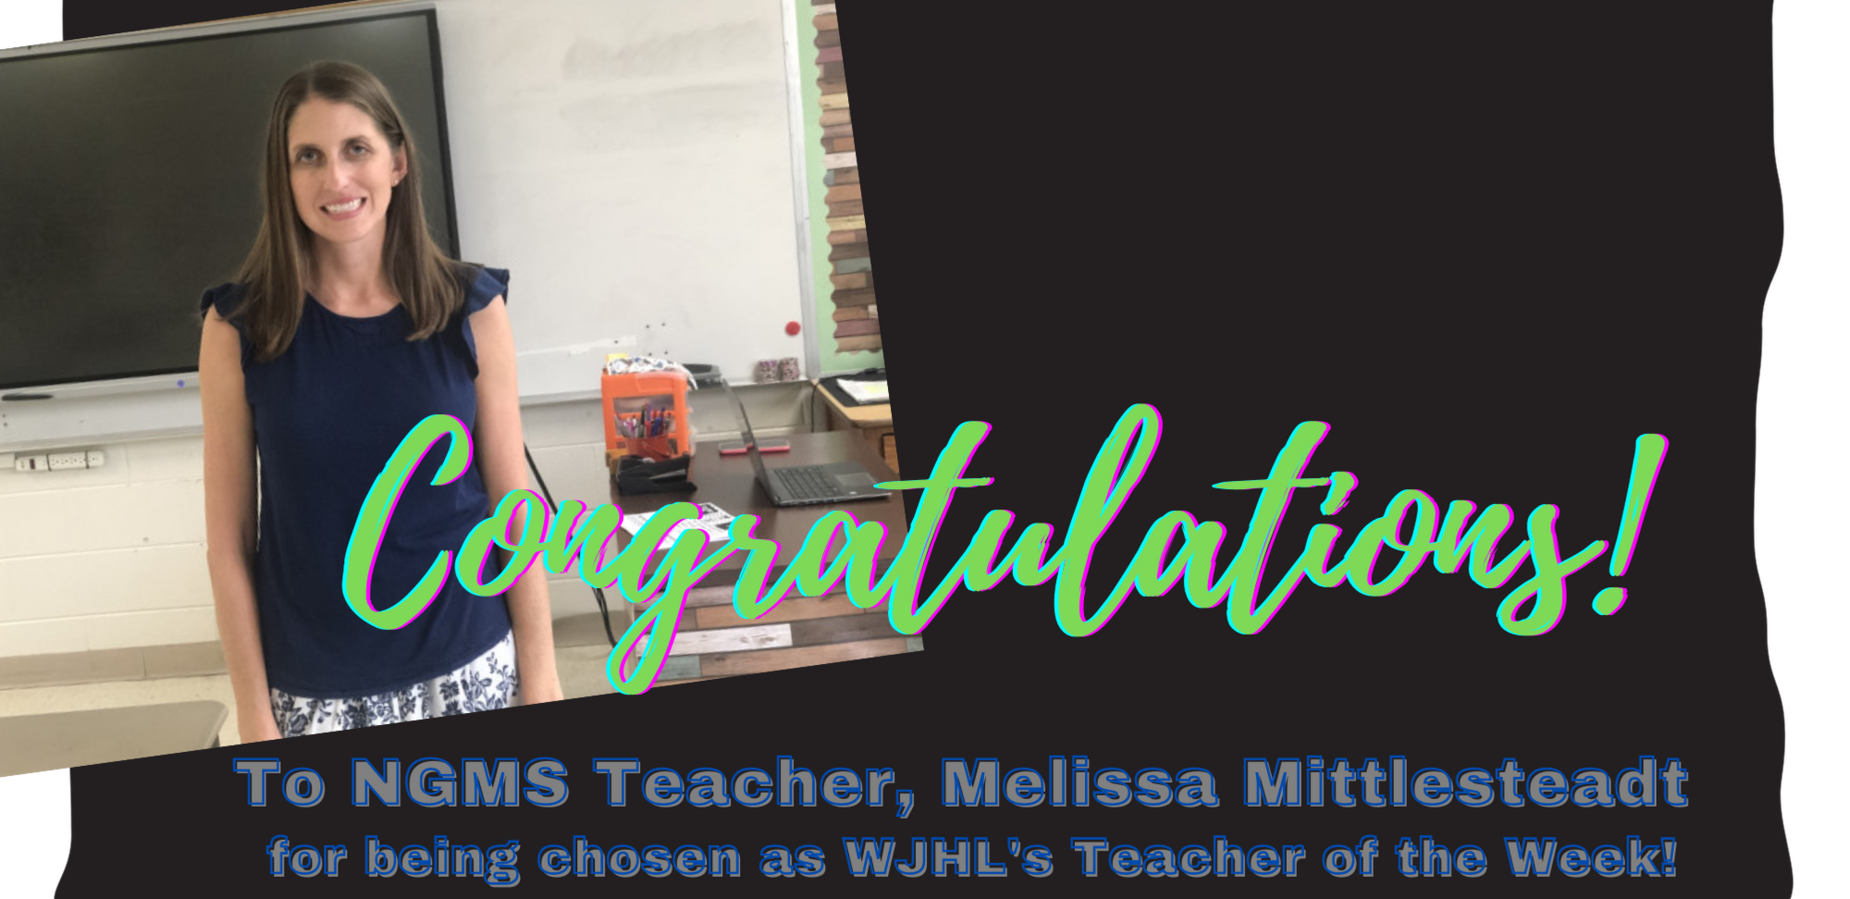 WJHL Teacher of the Week from NGMS